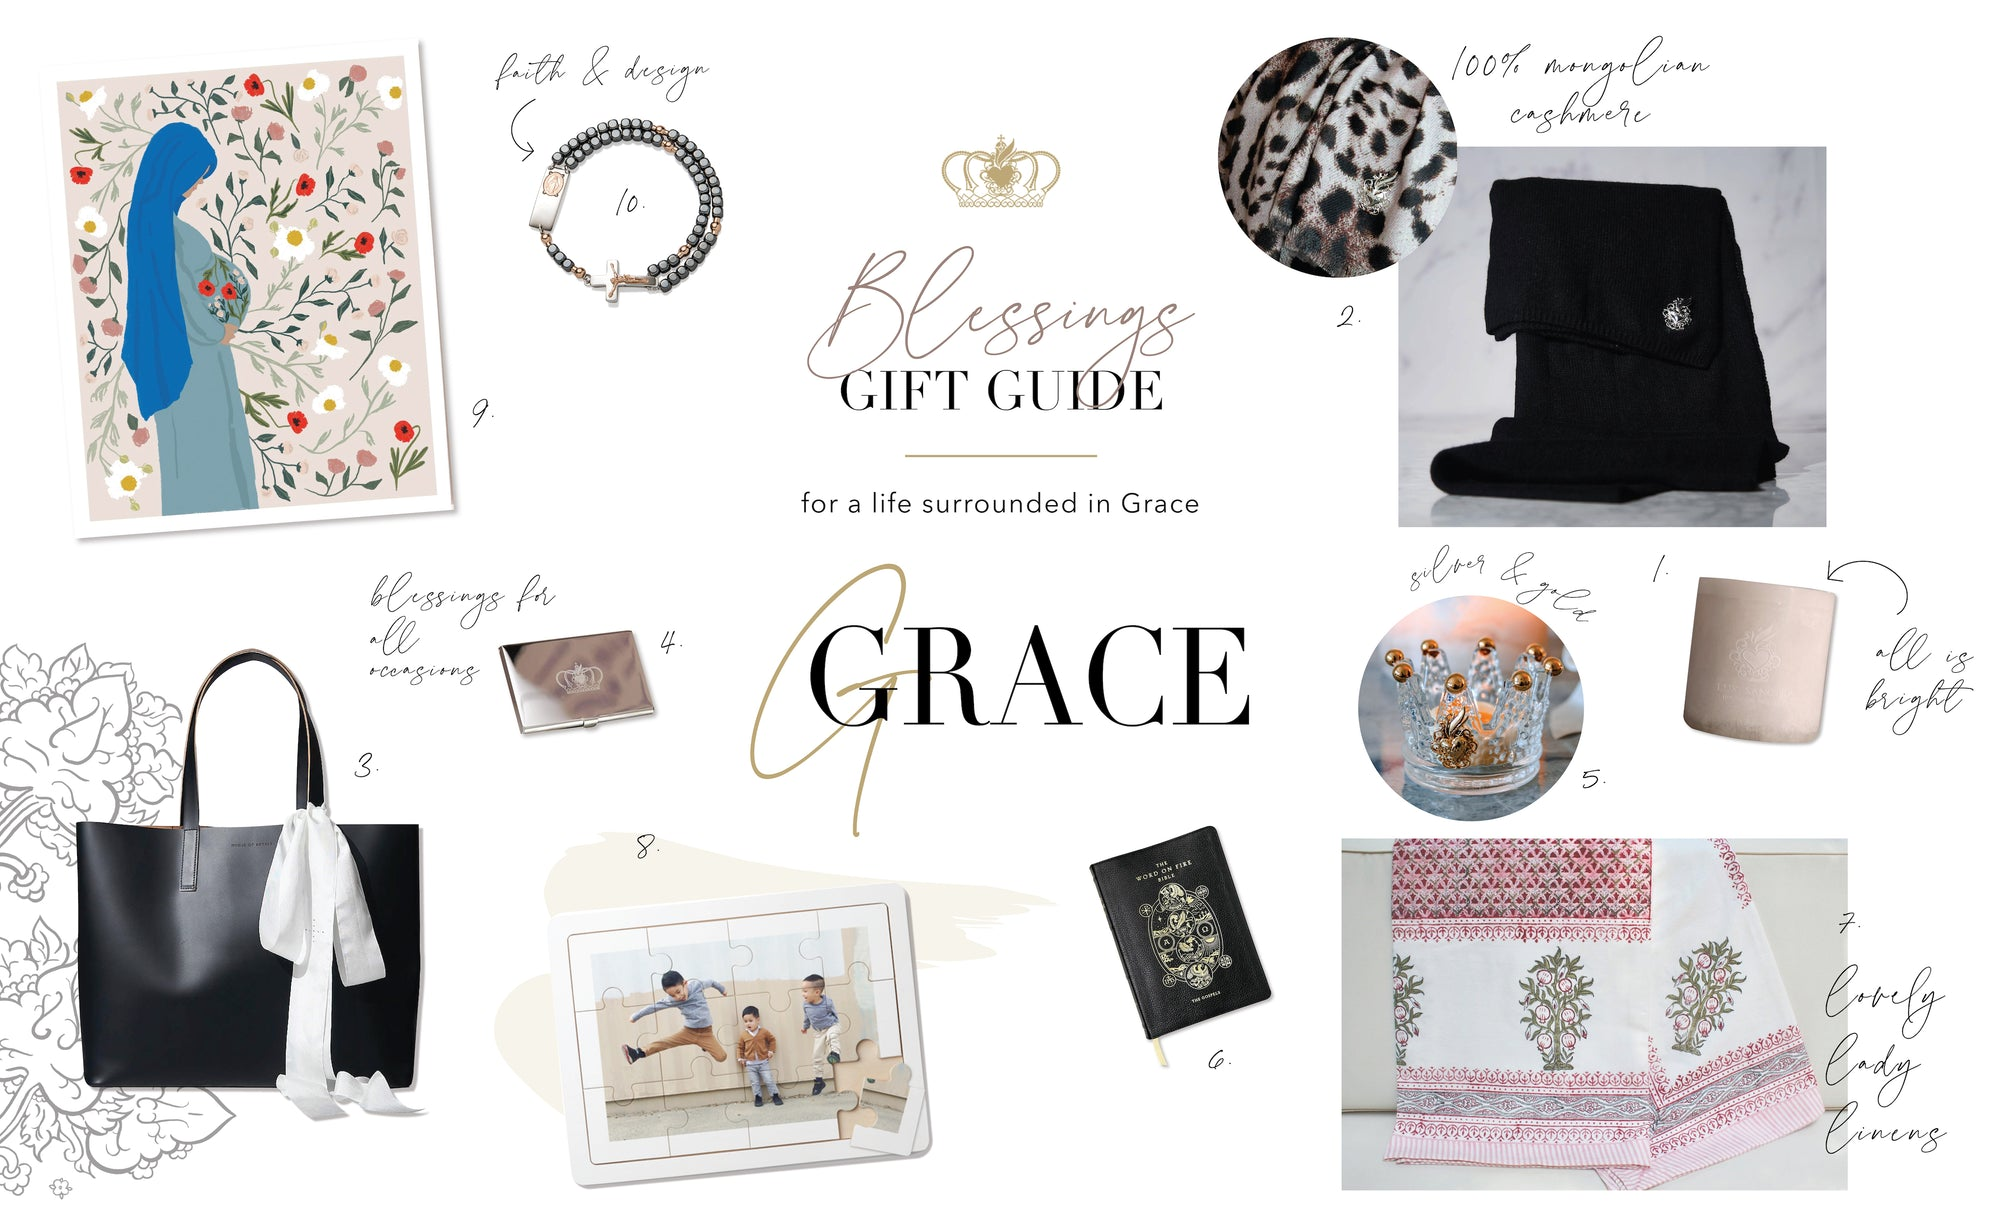 Blessings Gift Guide: Grace